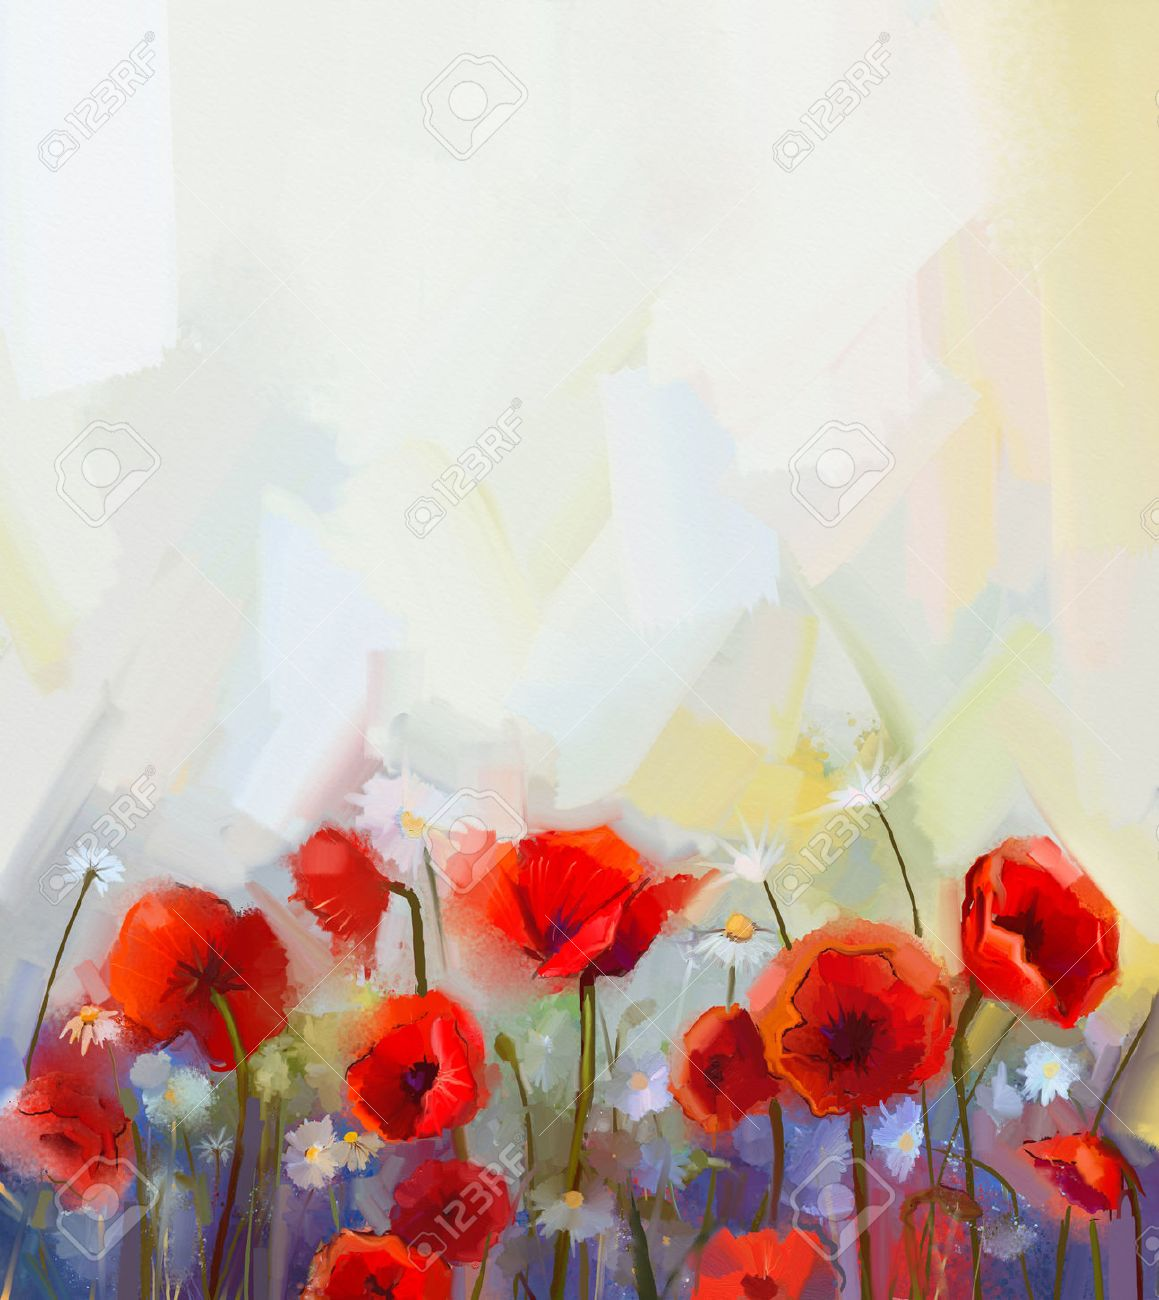 oil painting red poppy flowers spring floral nature background